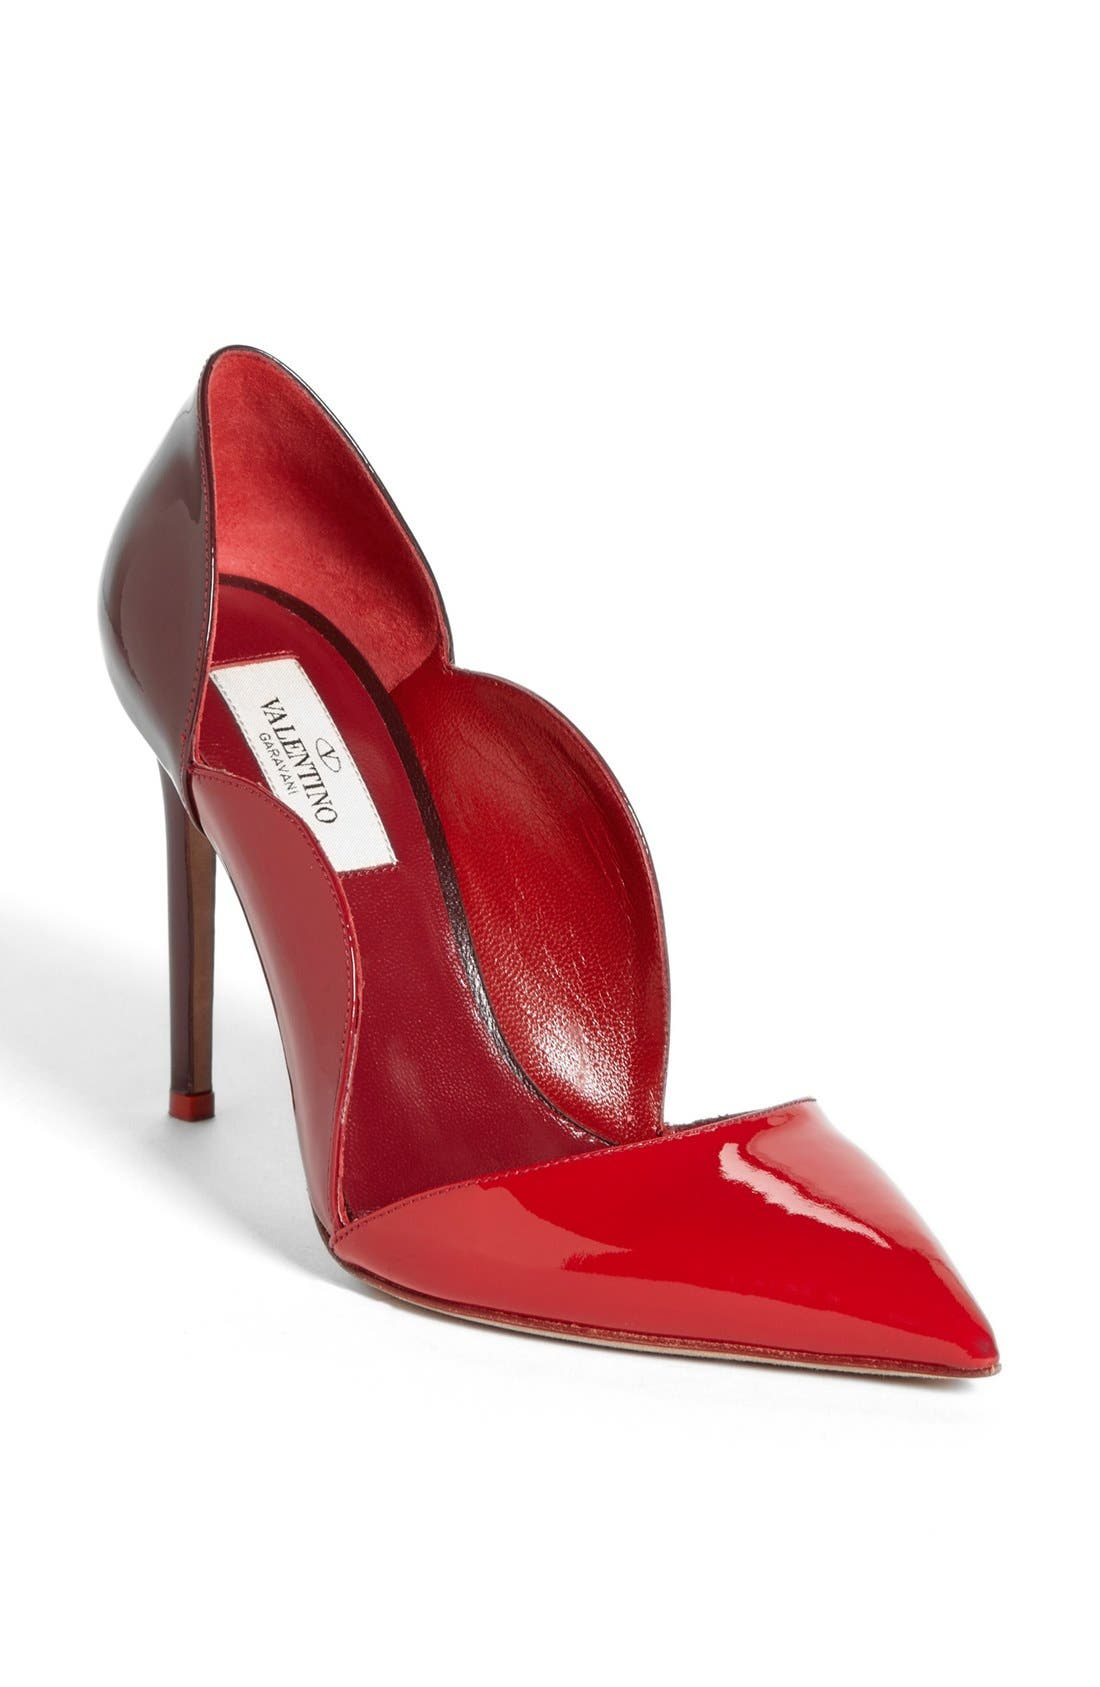 Main Image - VALENTINO GARAVANI Scalloped Pump